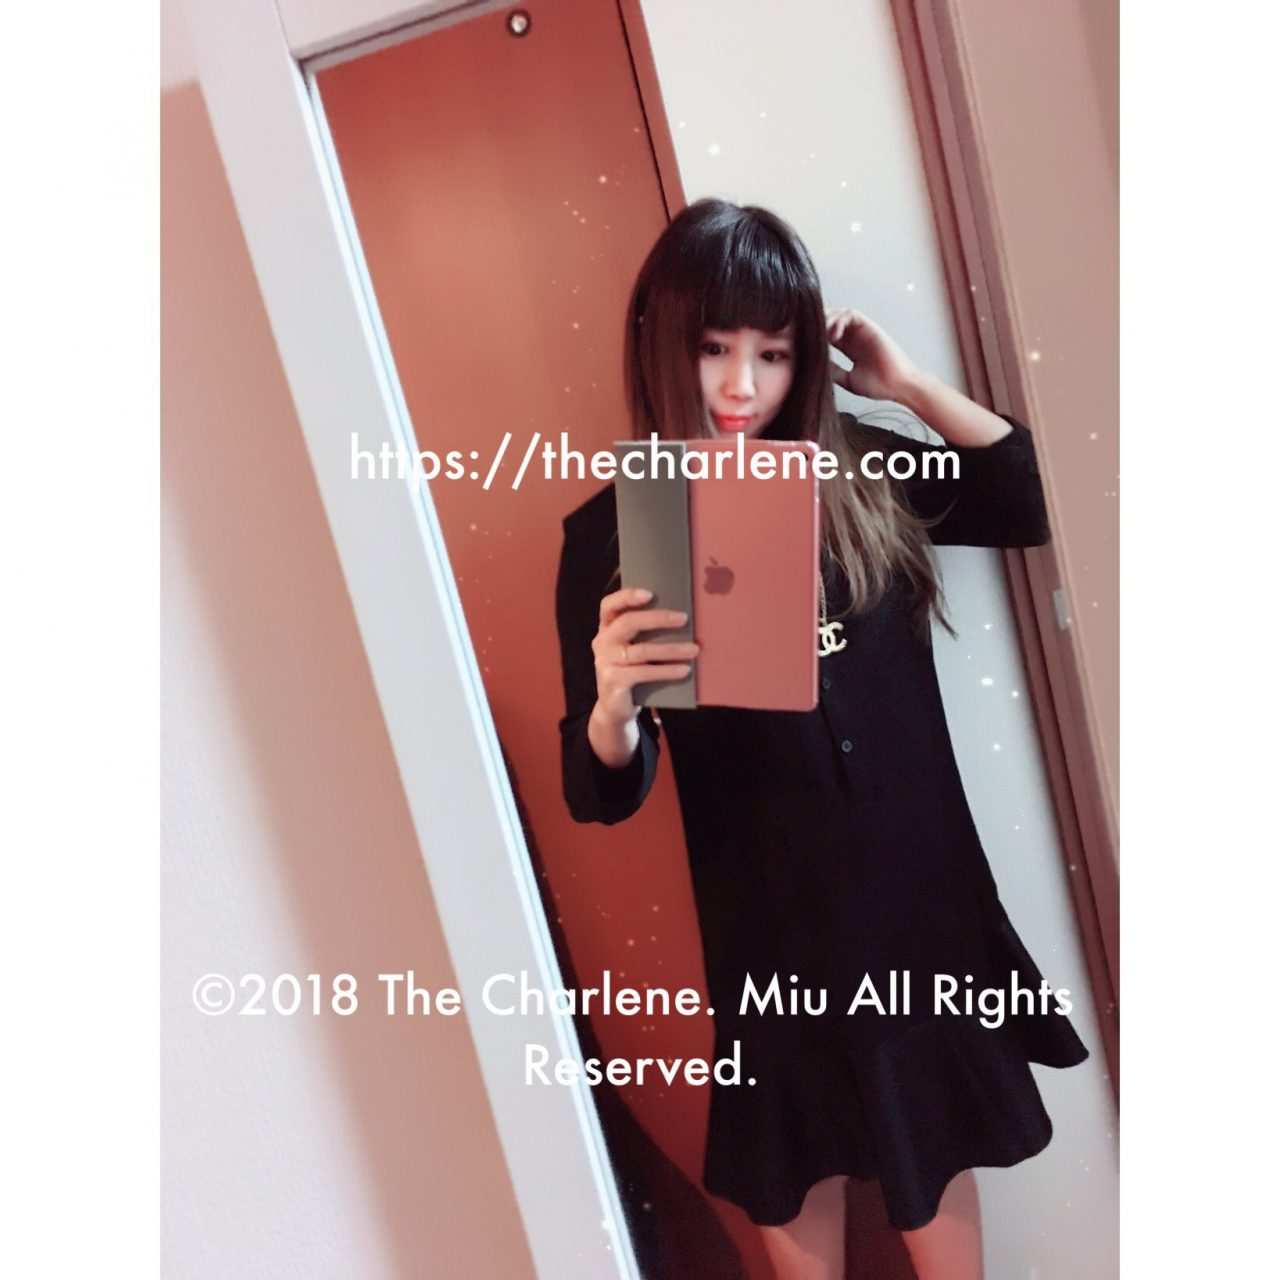 ©2018 The Charlene. Miu All Rights Reserved.